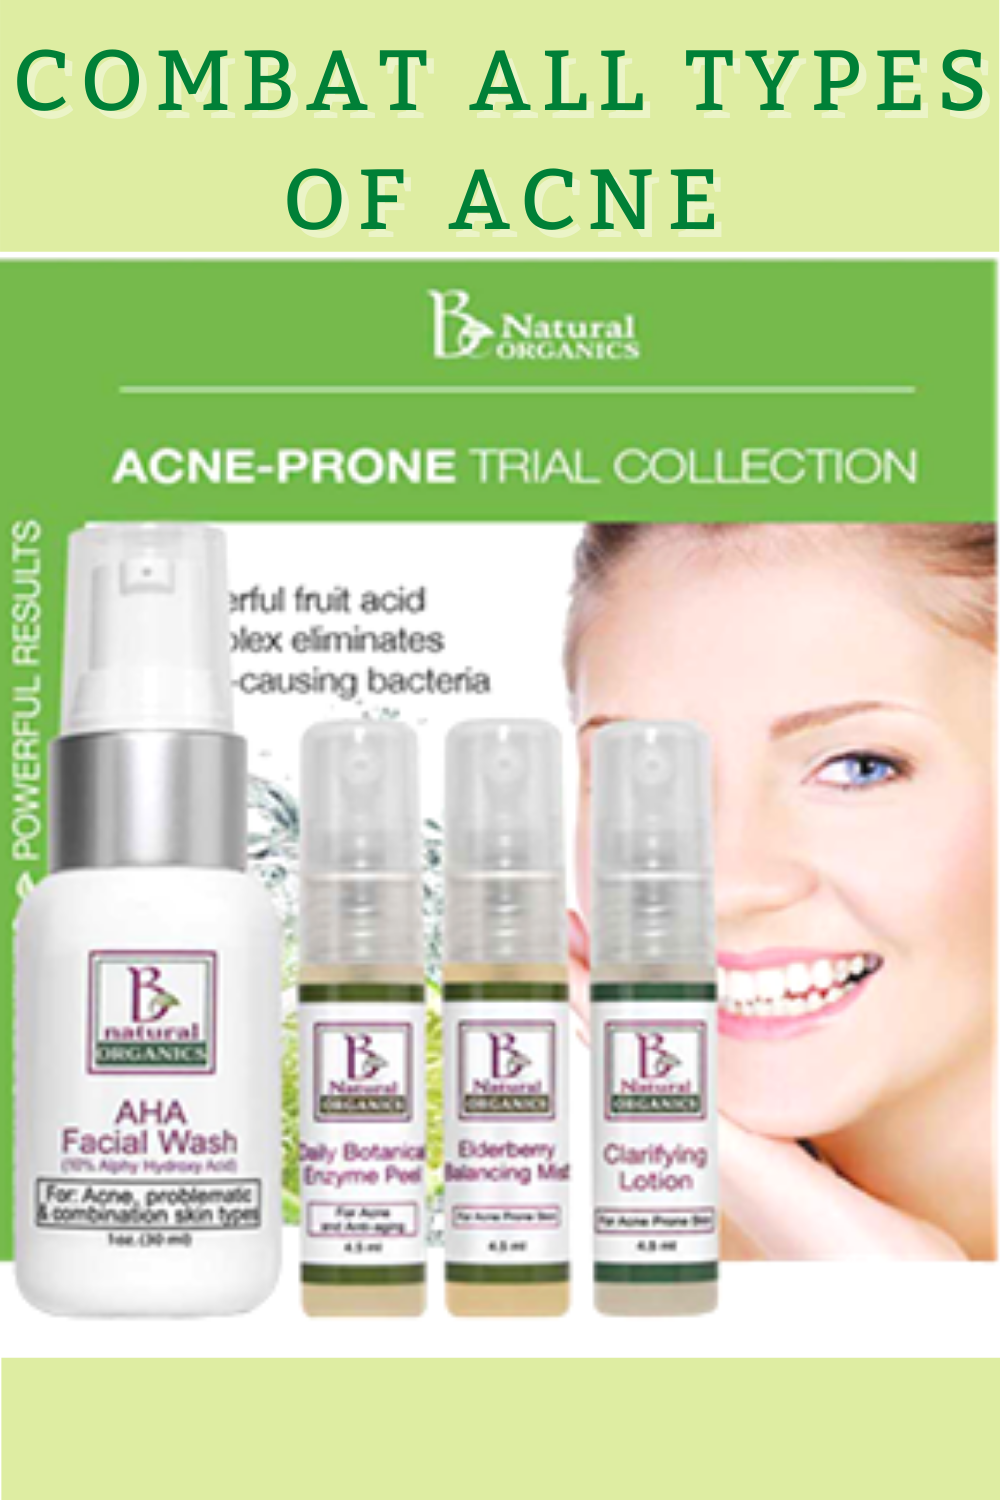 ACNE-PRONE D4-PIECE TRIAL COLLECTION (1)